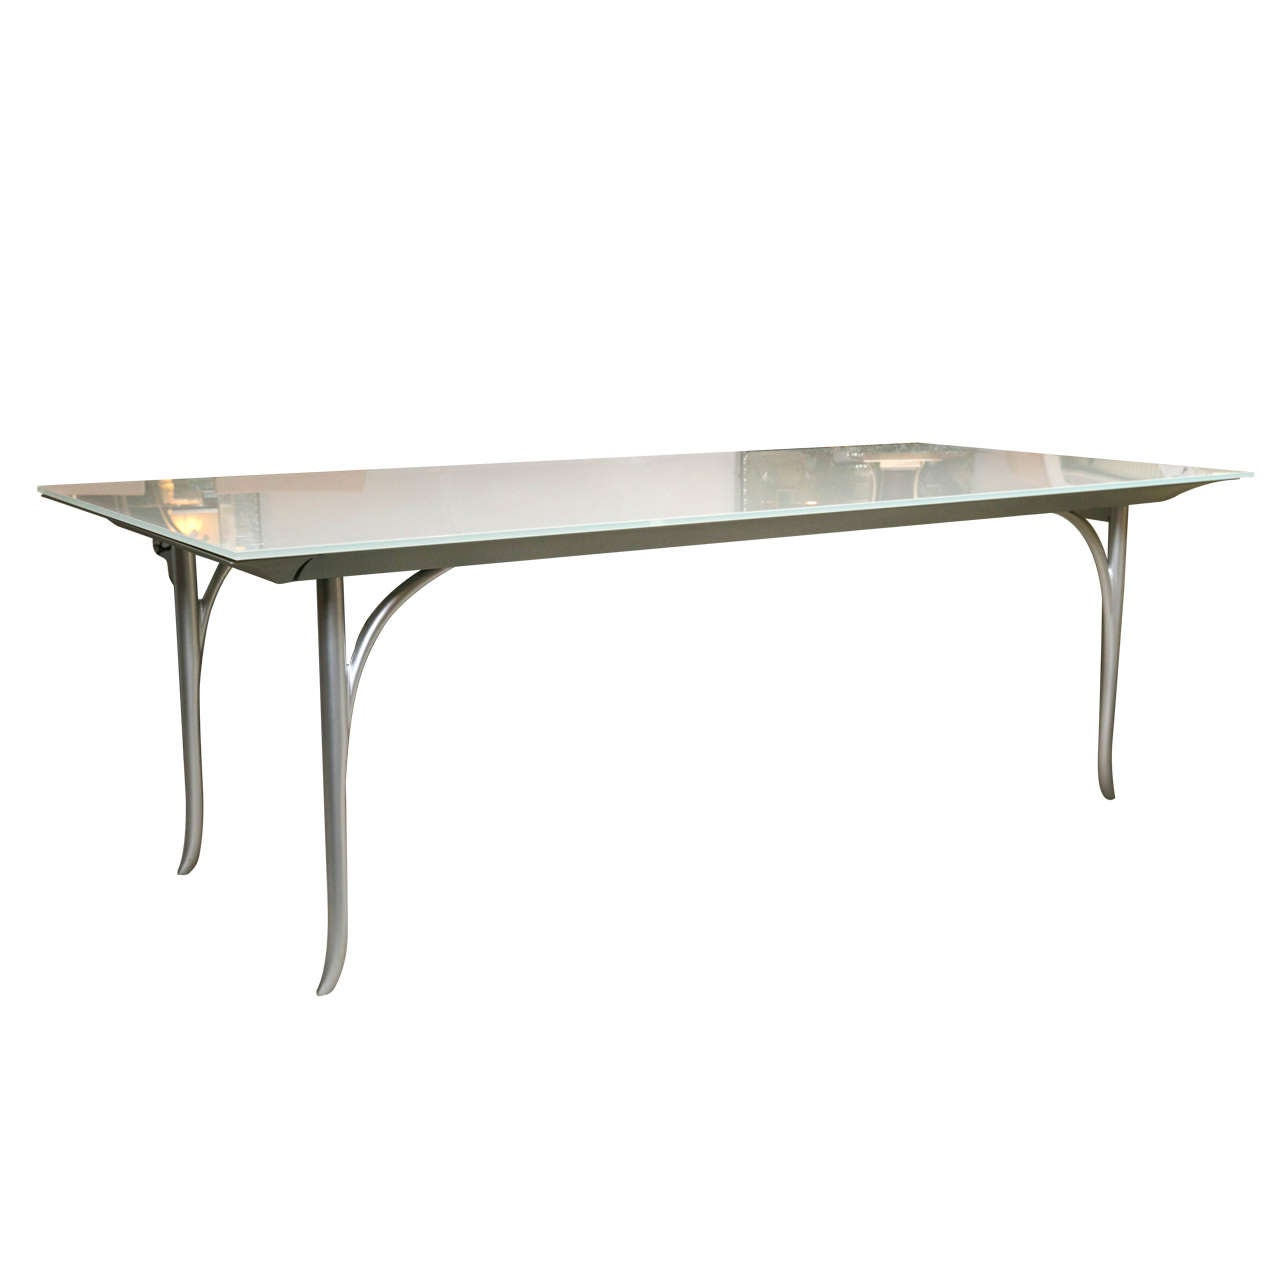 Roche bobois dining table with extendable leave at 1stdibs for Table marbre roche bobois